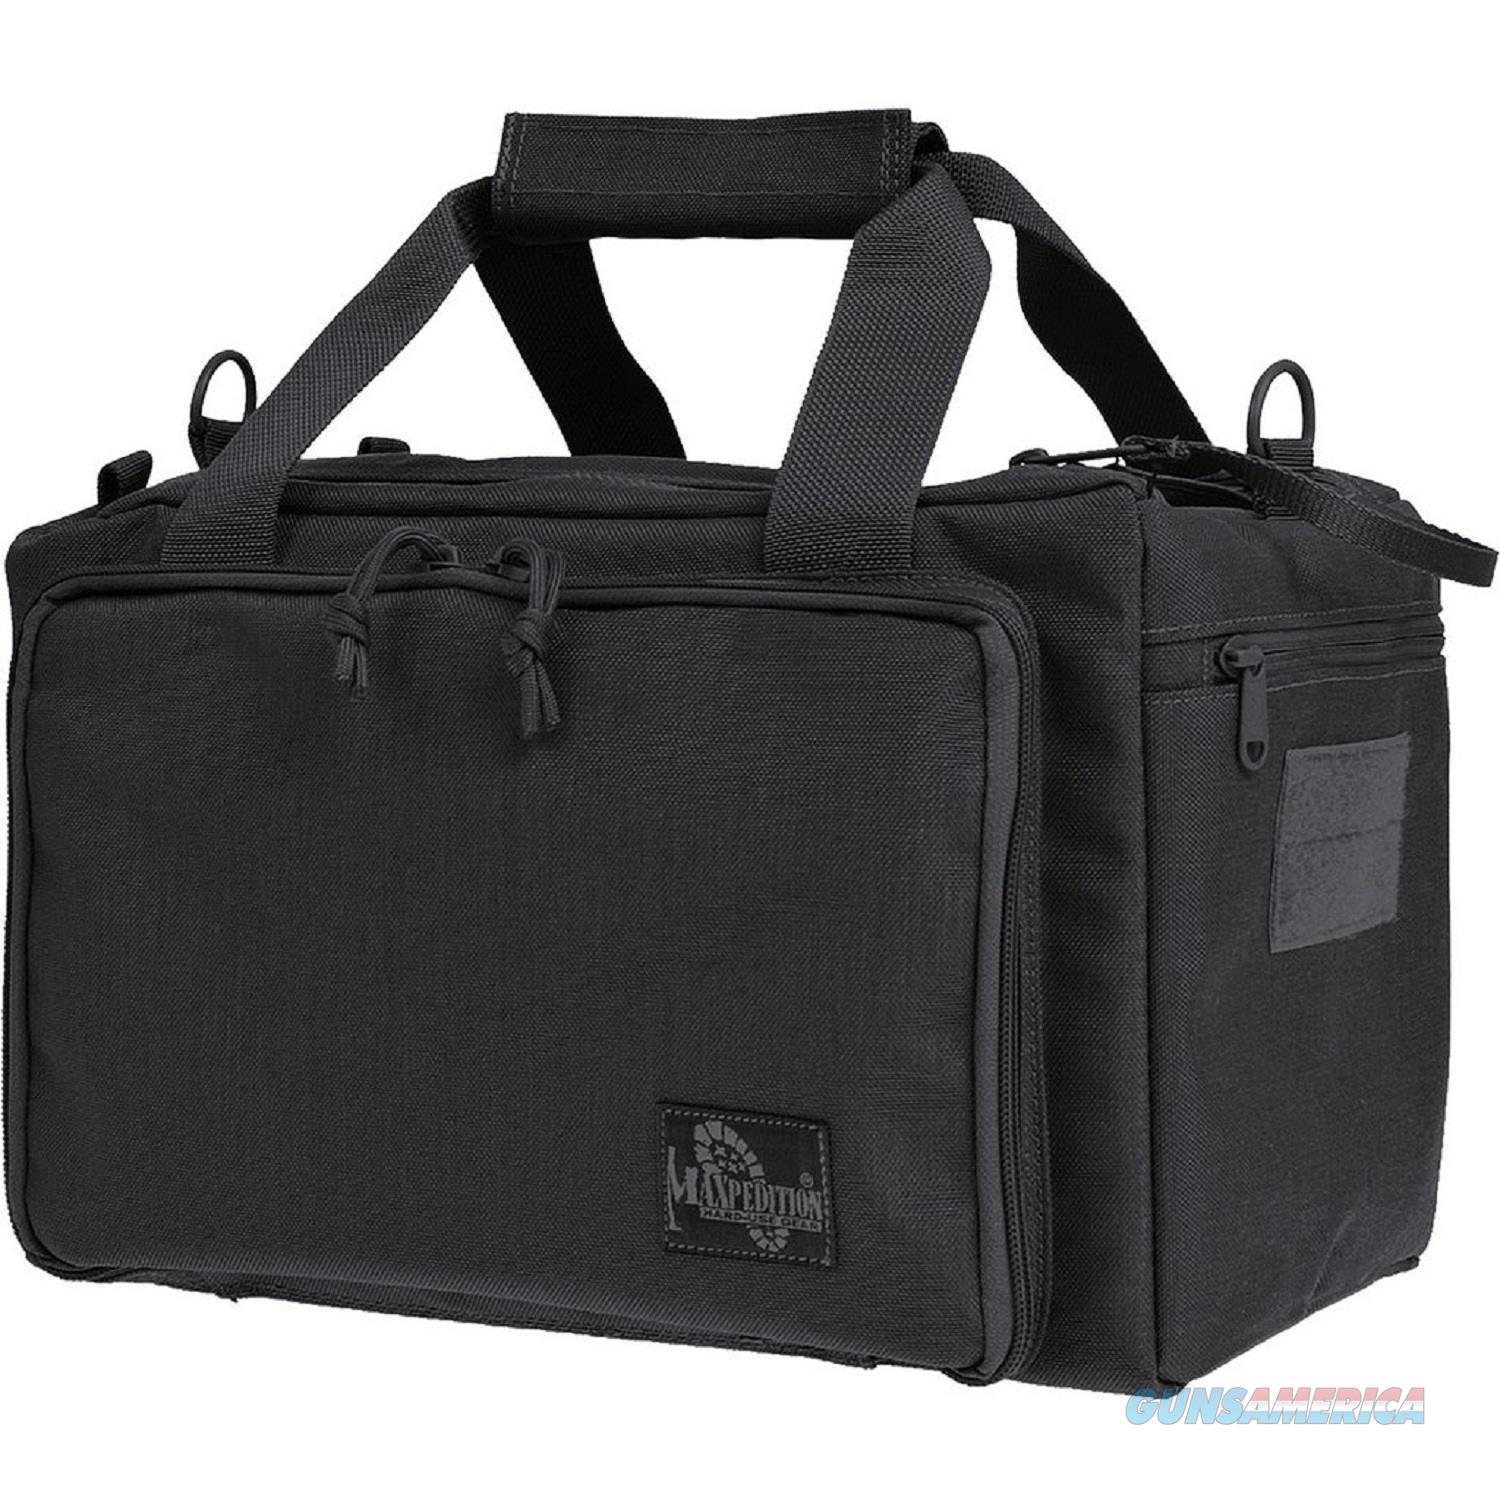 Maxpedition Compact Range Bag Black 0621B  Non-Guns > Gun Cases